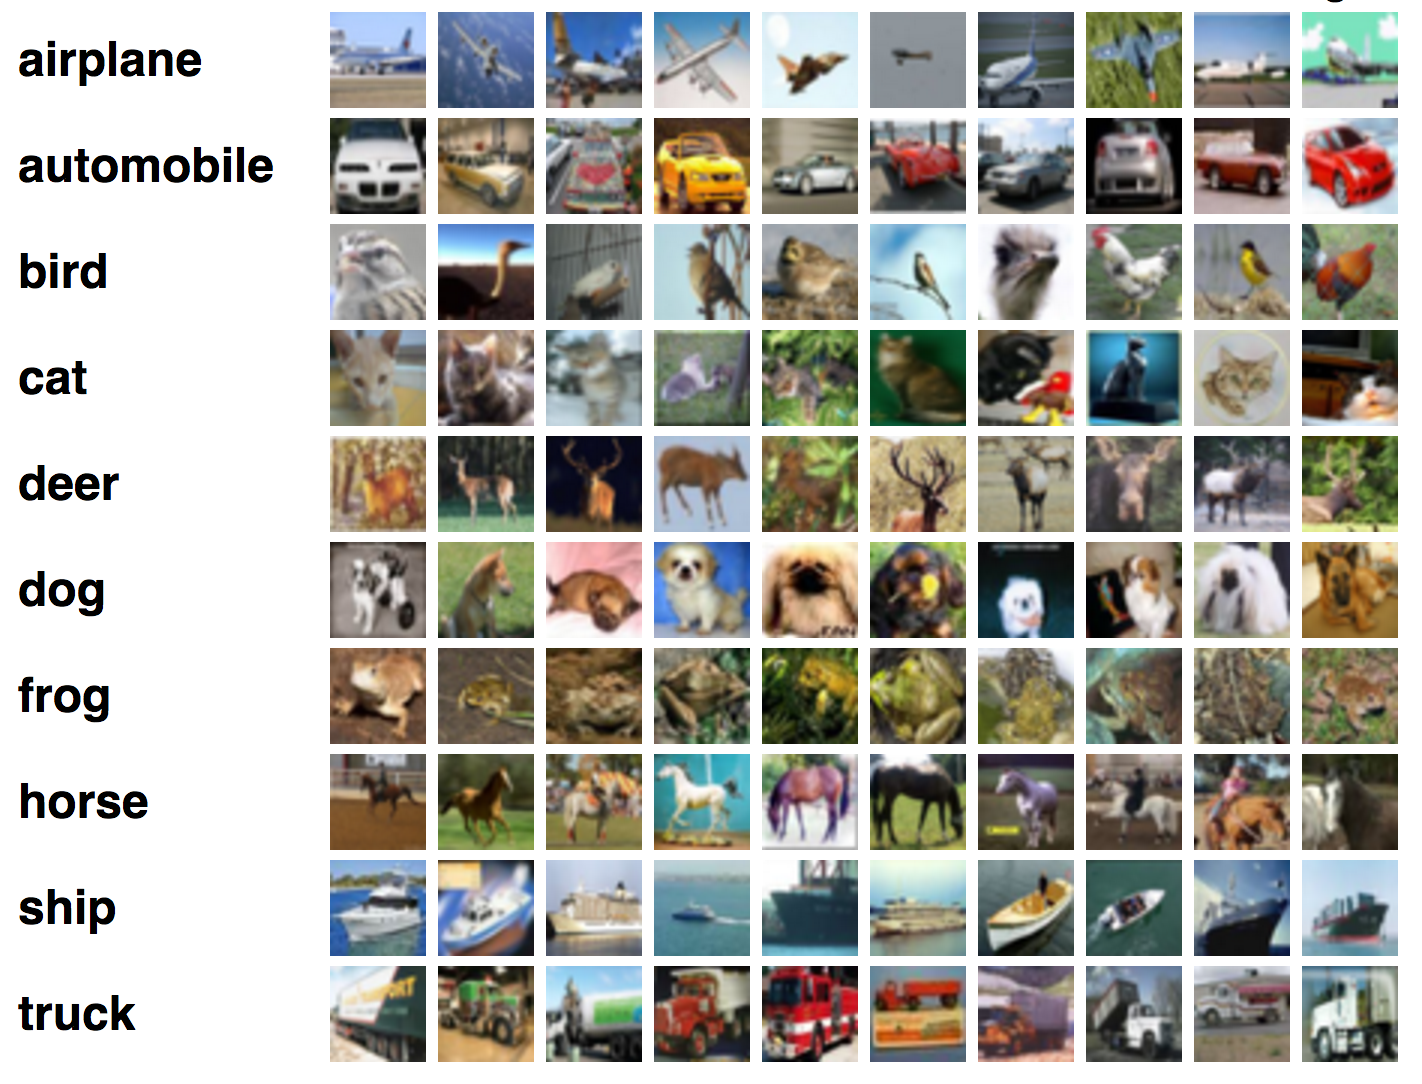 Image Classification using Deep Neural Networks — A beginner